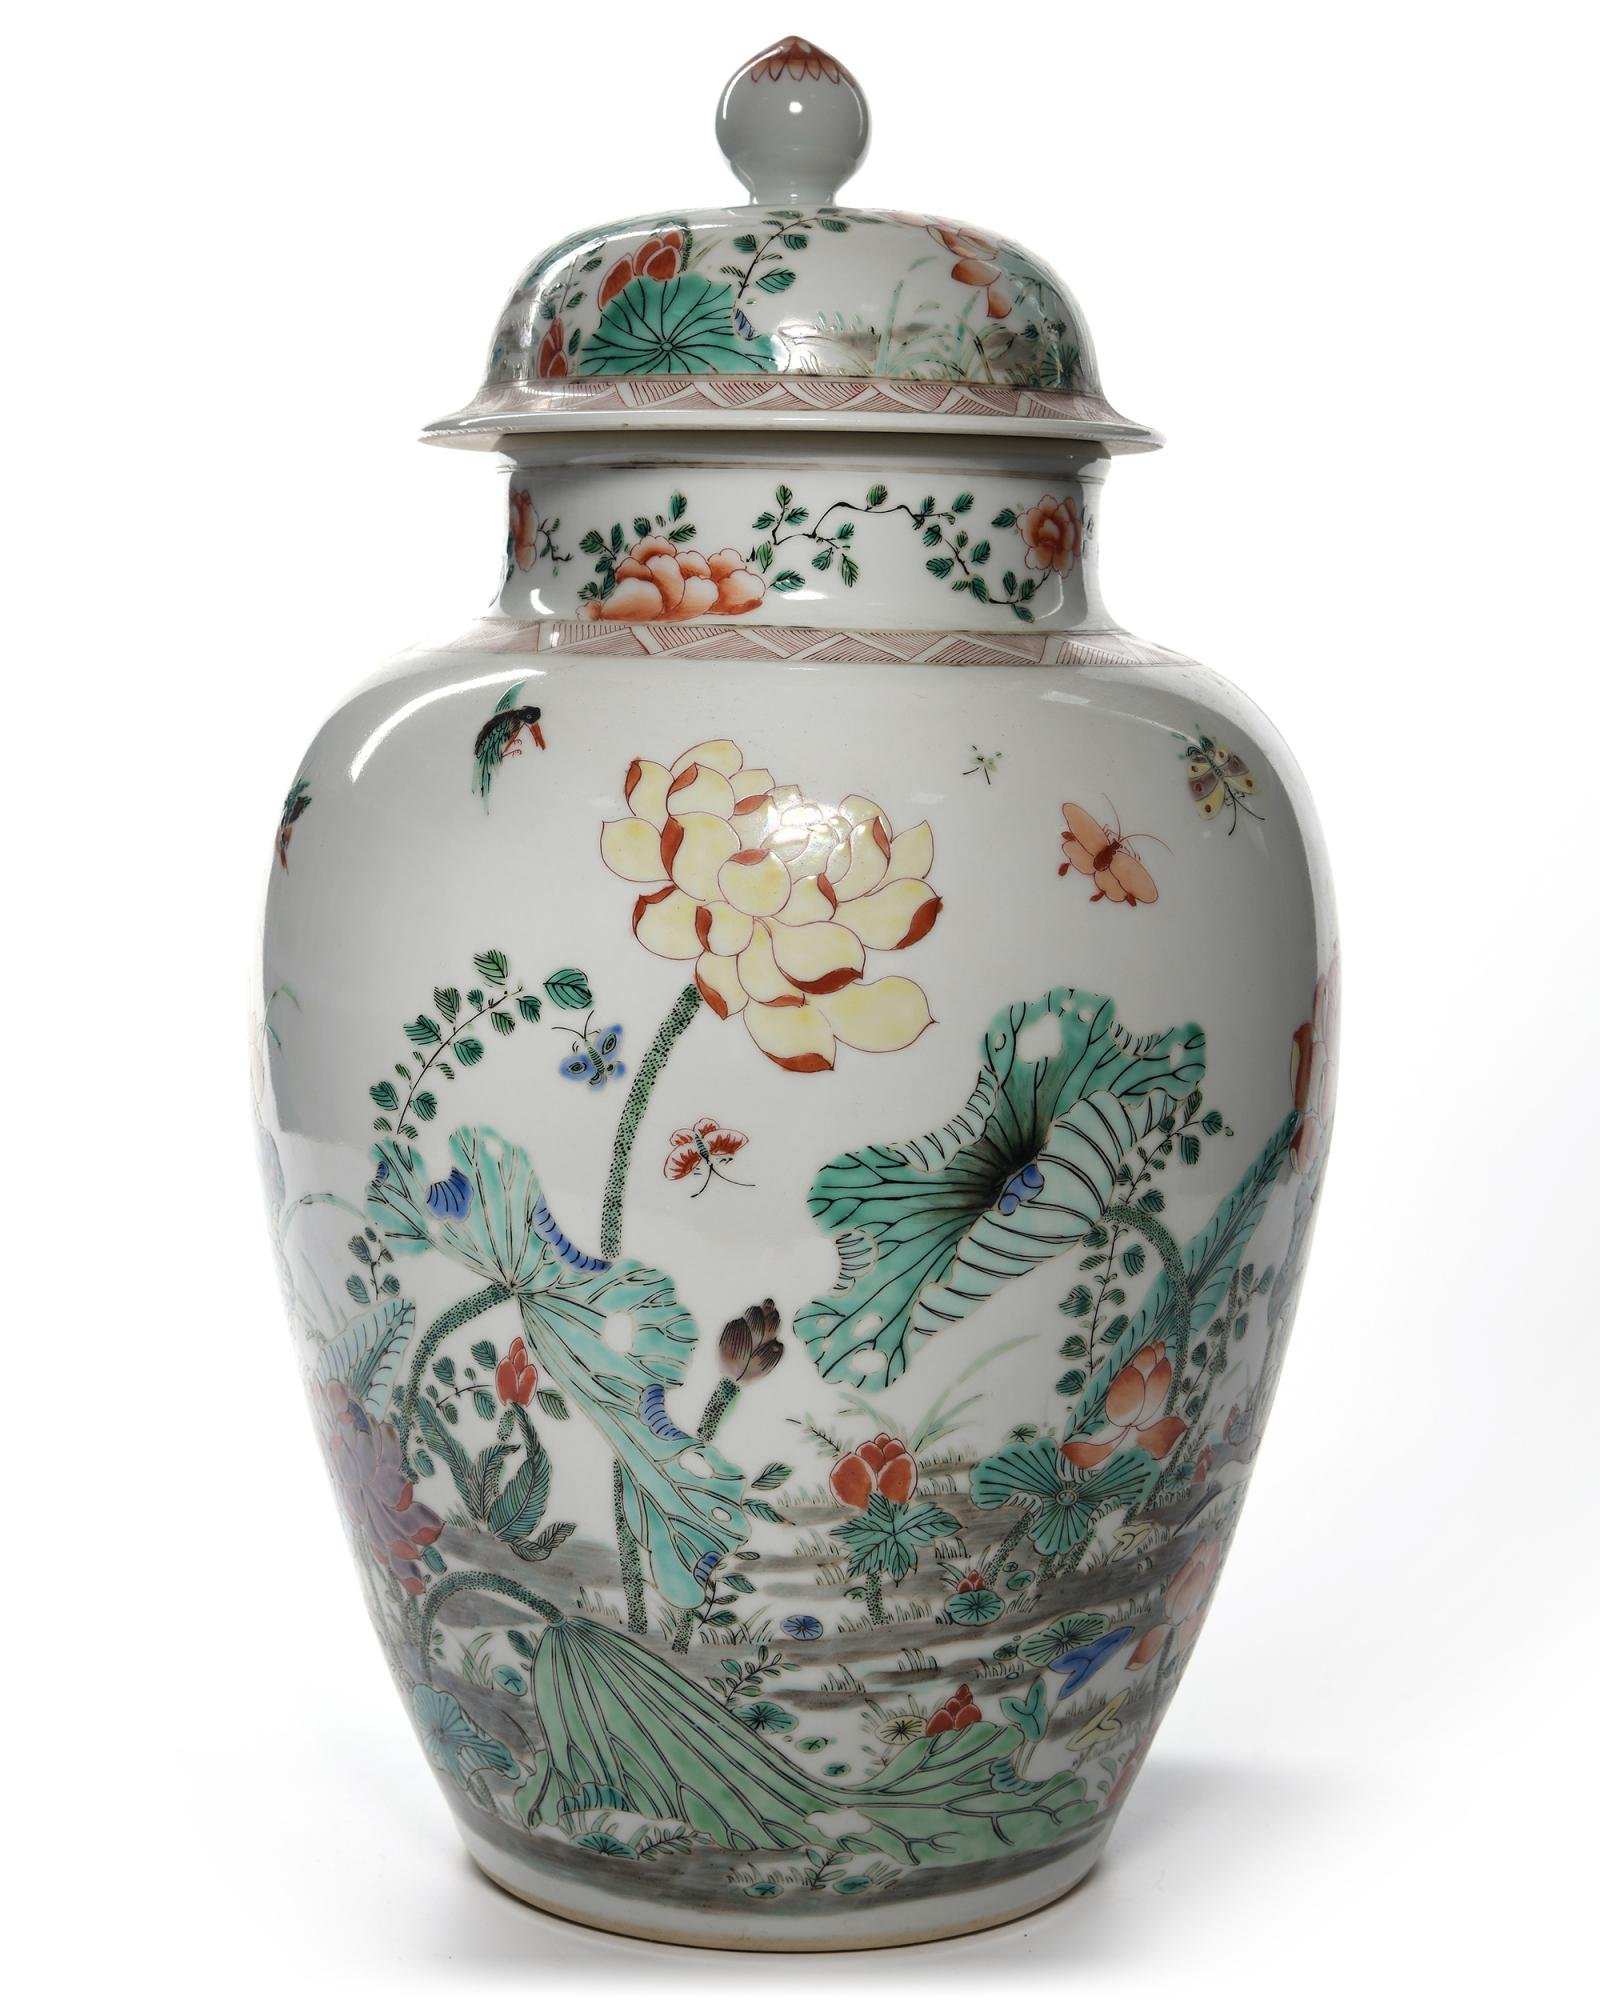 A CHINESE FAMILLE VERTE VASE AND COVER, CHINA,